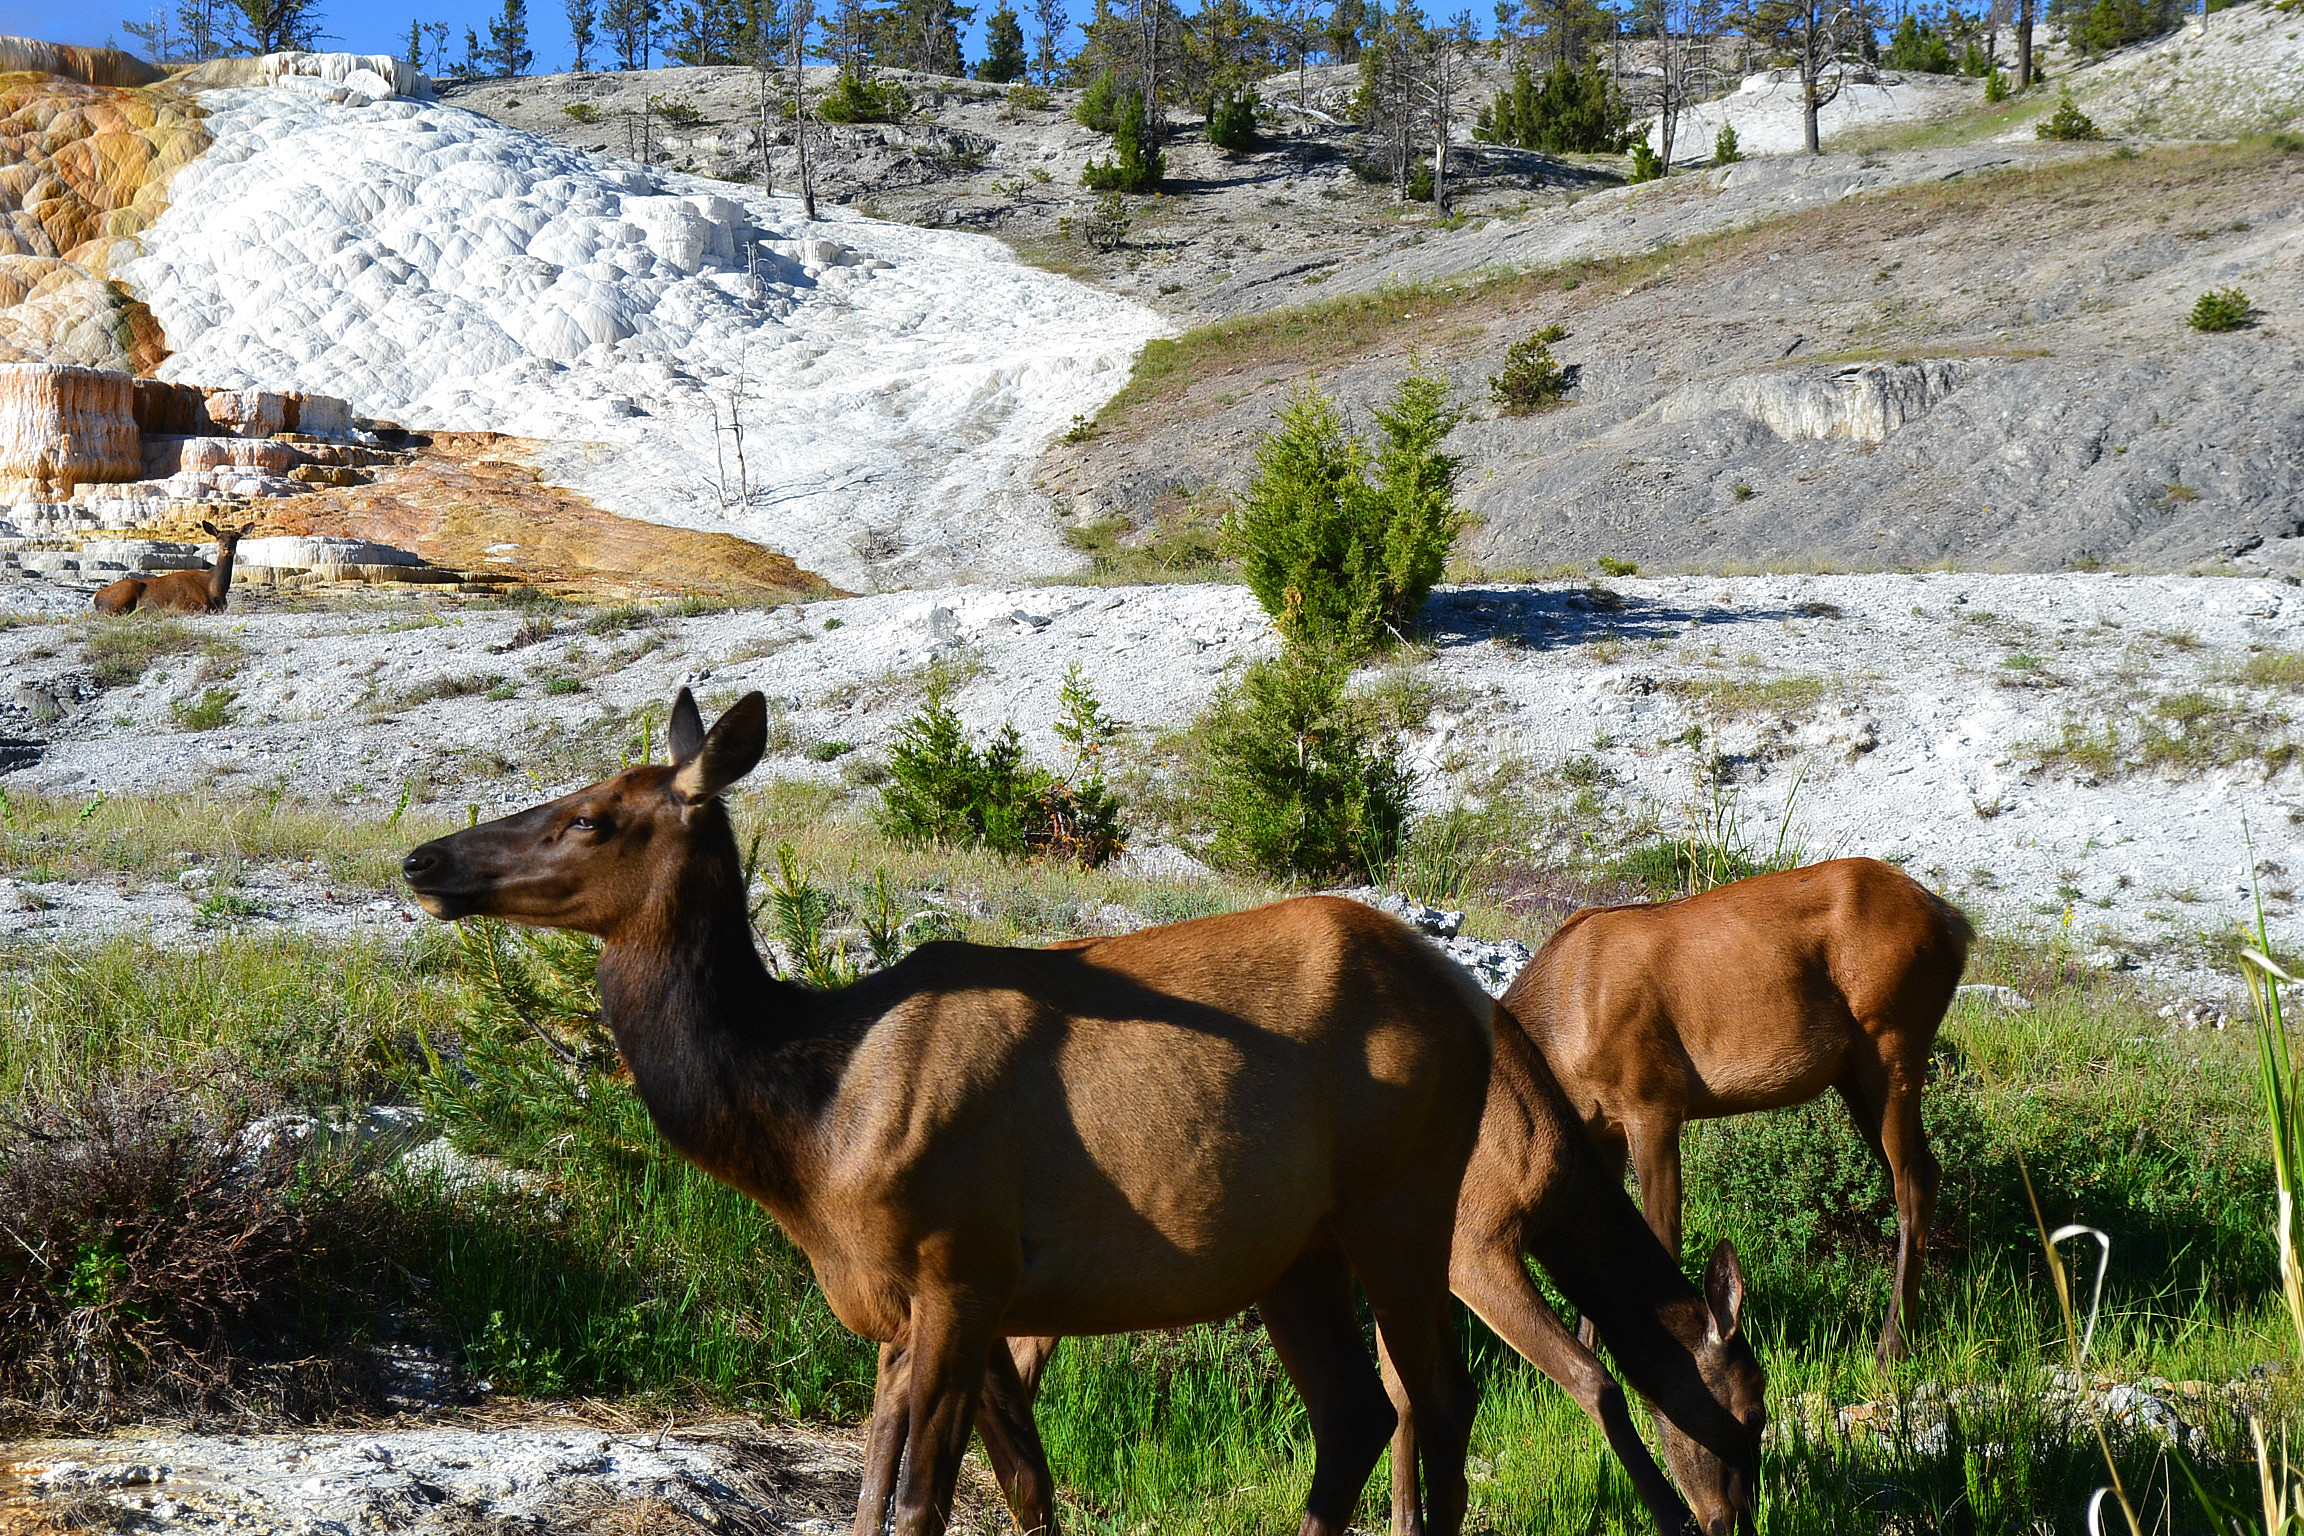 Young elk grazing near mammoth hot spring.